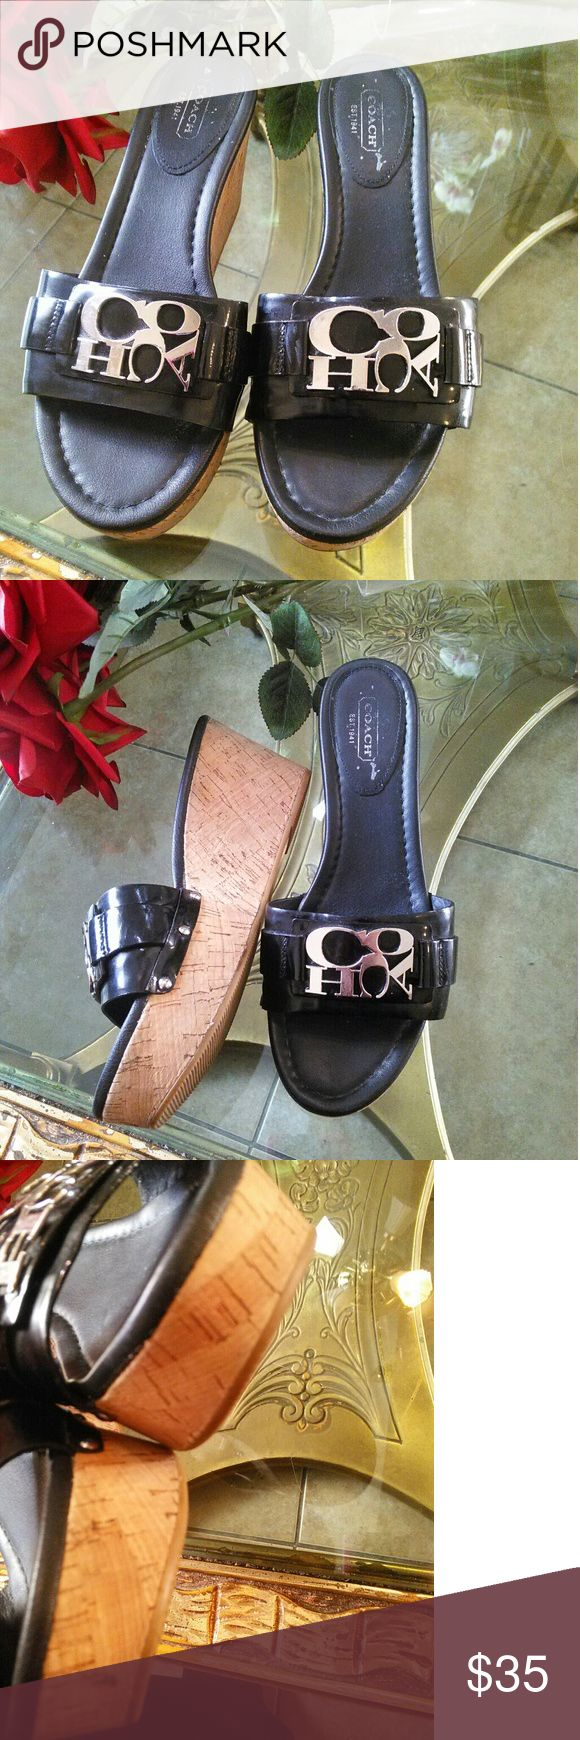 Coach Jen Patent A8379 Wedge Sandals shoe Size 8 Black Coach Jen Patent A8379 Ladies Wedge Sandals Size 8. Original coach shoes fantastic for this summer. Gently used in great condition. They are ready to be loved. ;) coach   Shoes Wedges